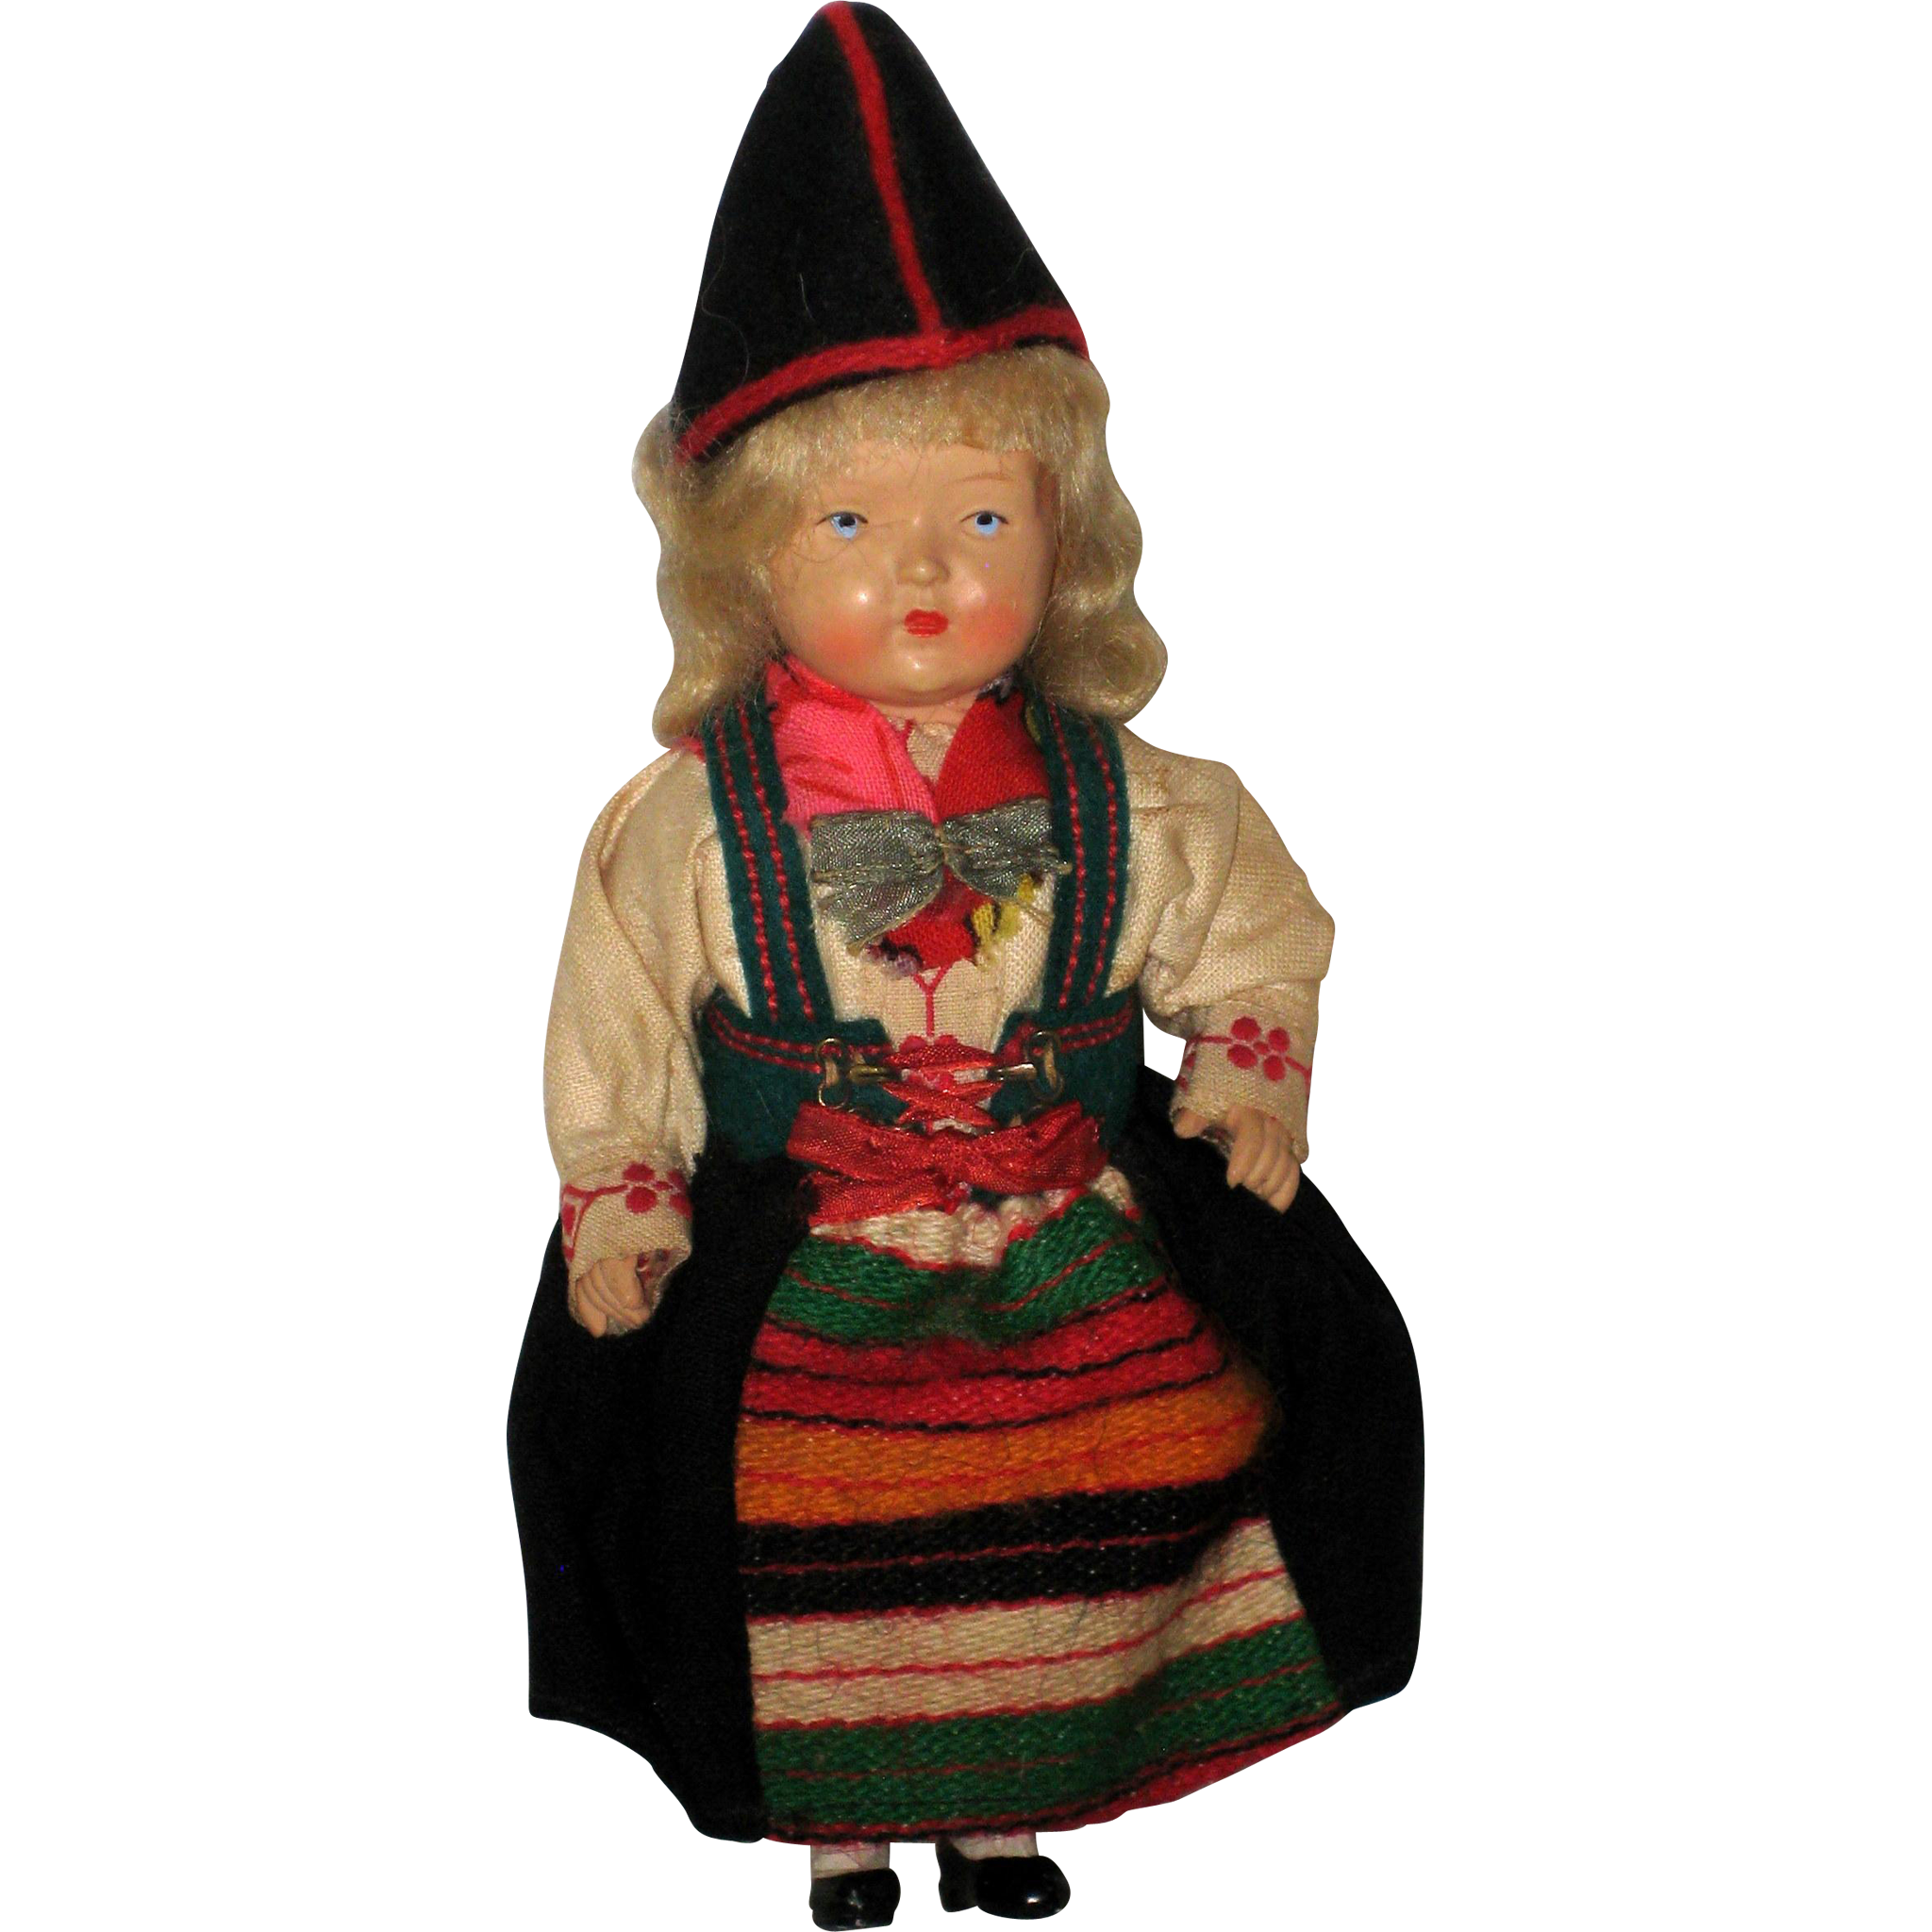 Vintage Celluloid Swedish Gode Ideer Doll in Rattvik, Dalarna Dress